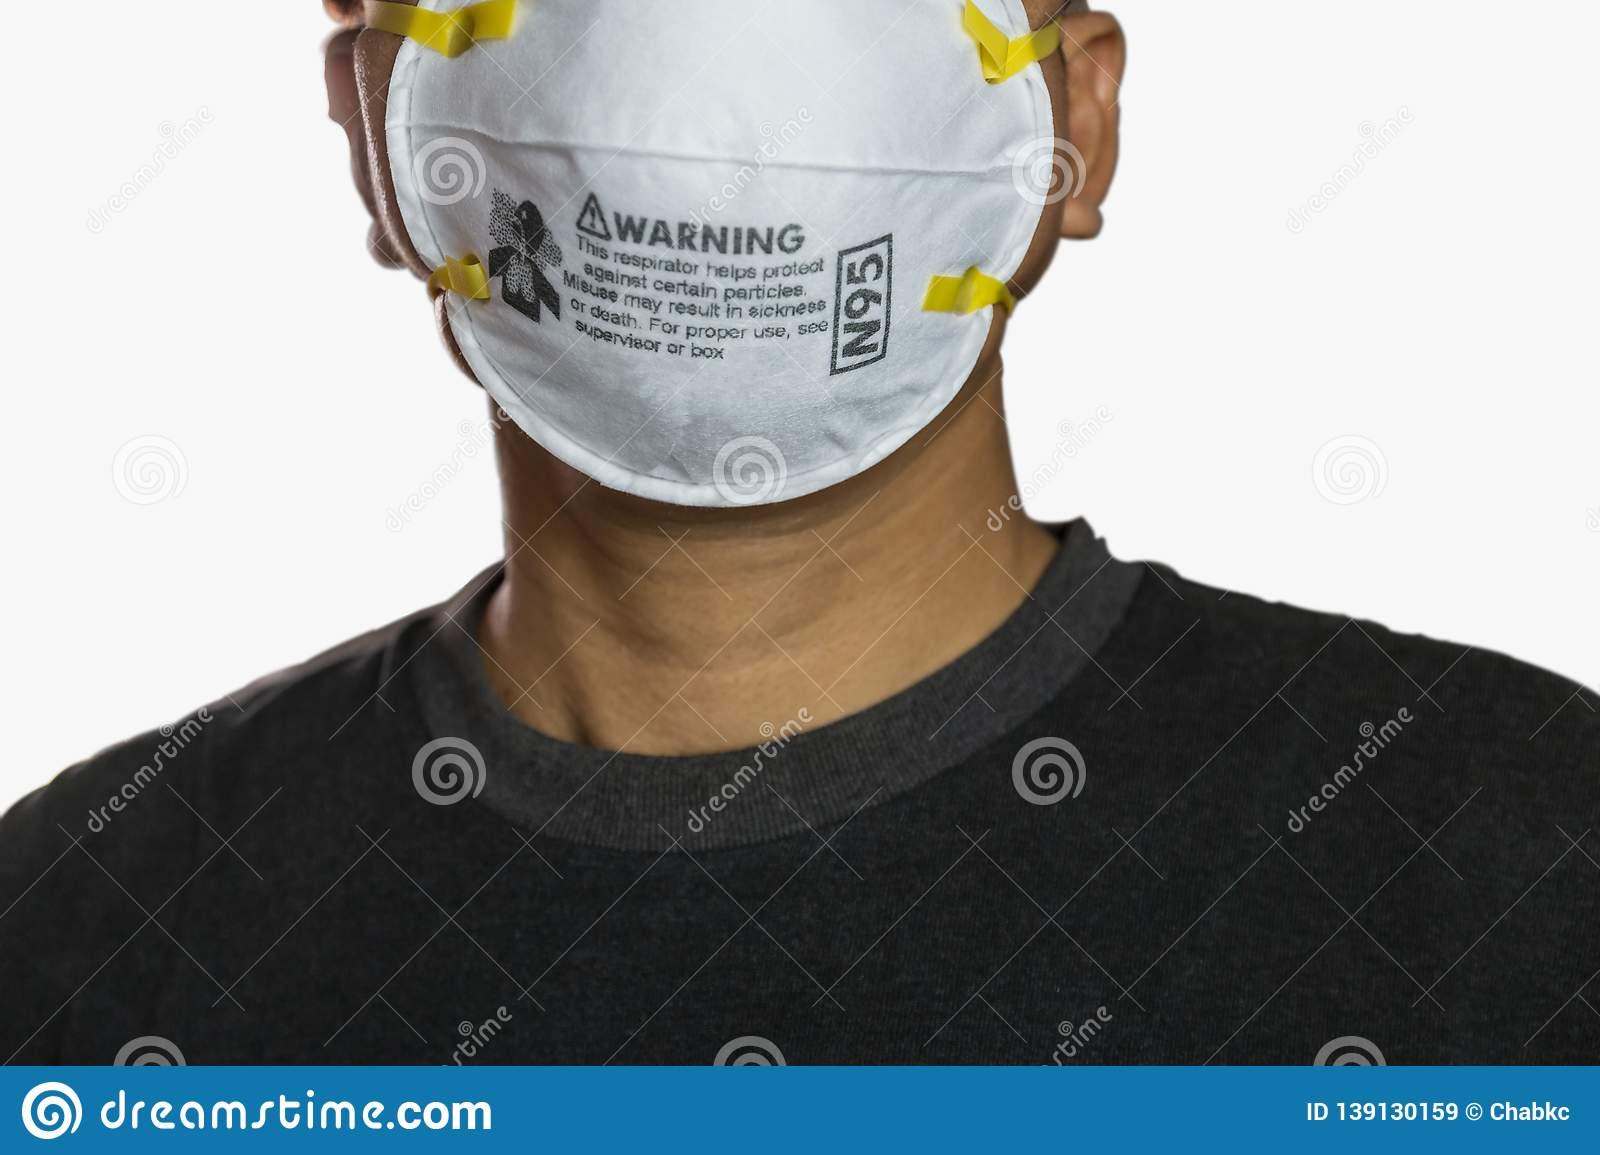 air filter masks for pollution and allergens n95